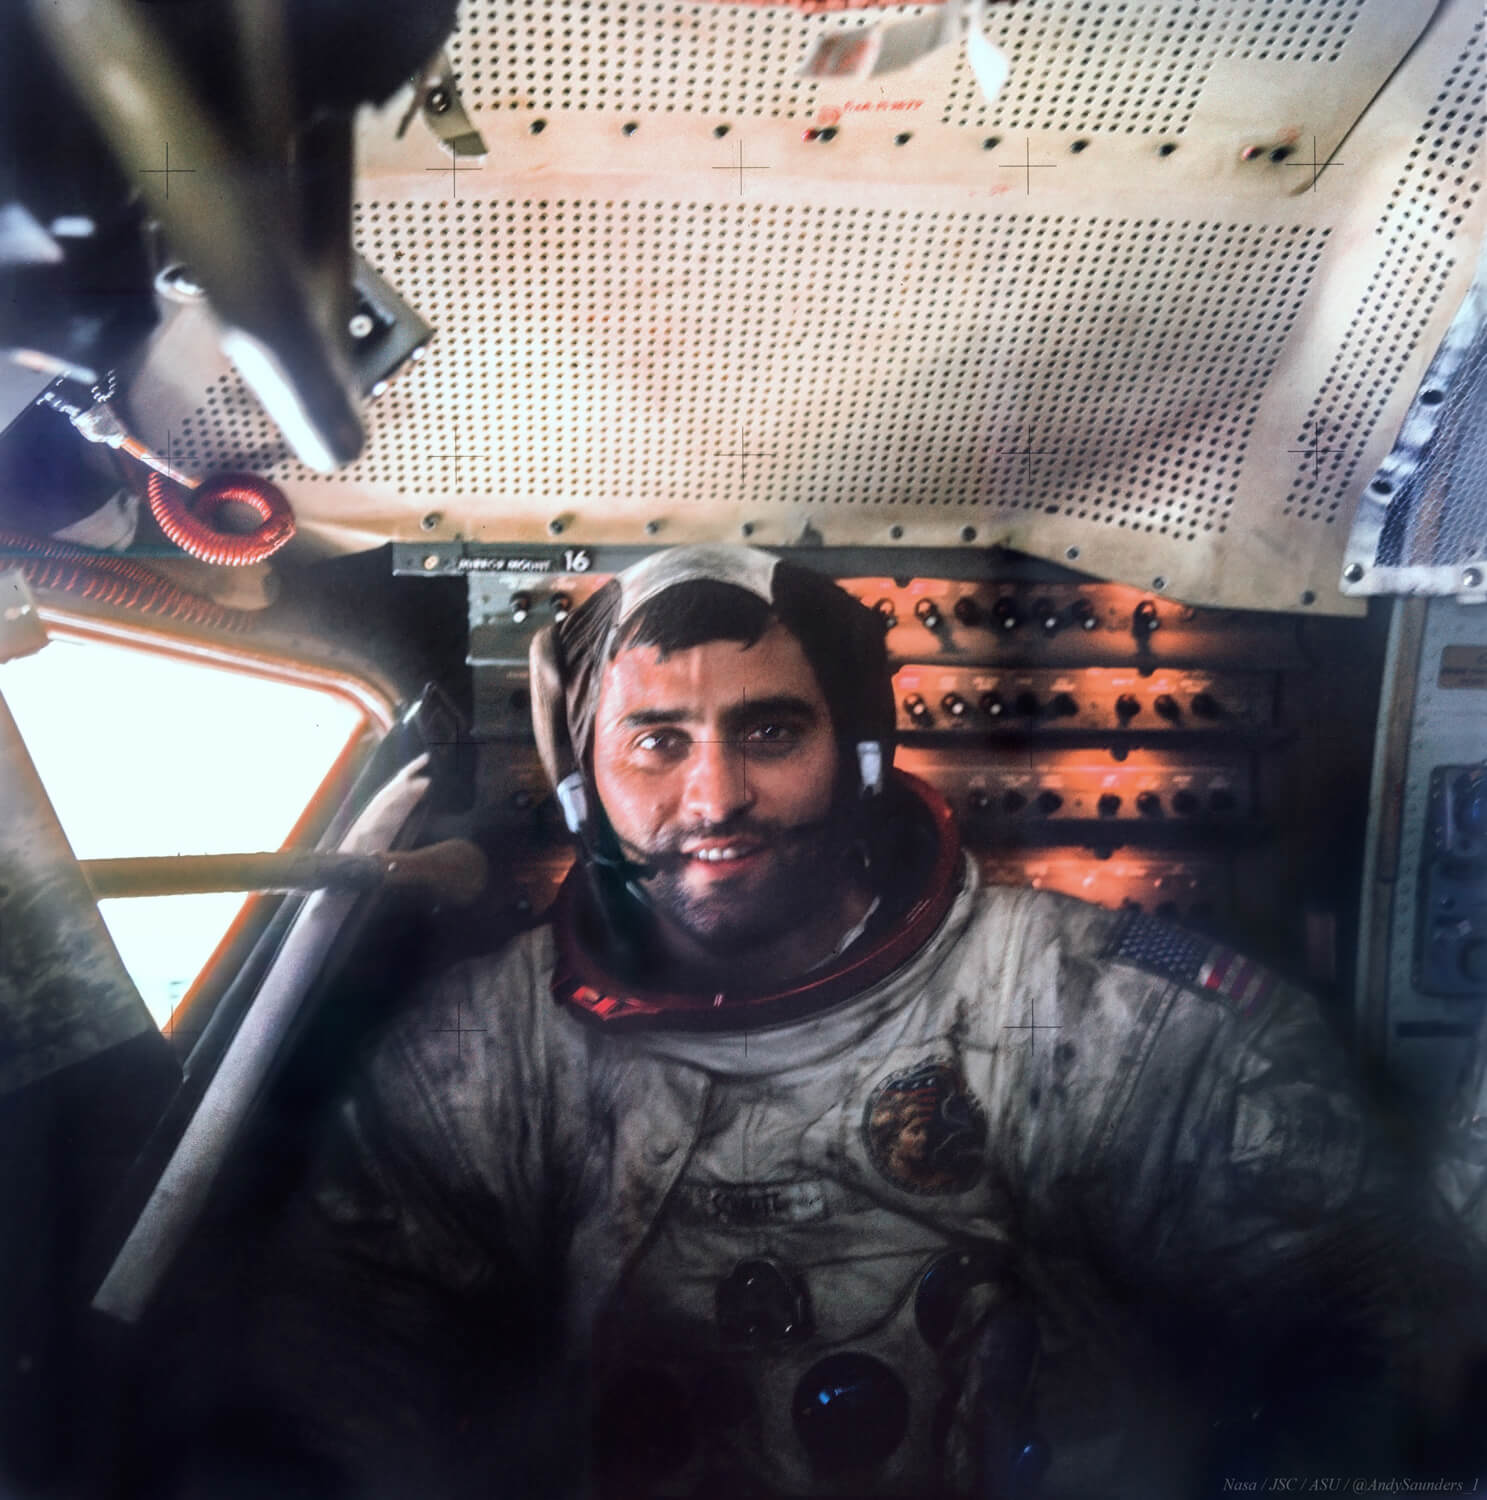 Now painstakingly remastered to reveal stunning detail of a tired but content looking Jack Schmitt in the Lunar Module, covered in Moon dust after his exhausting EVA.